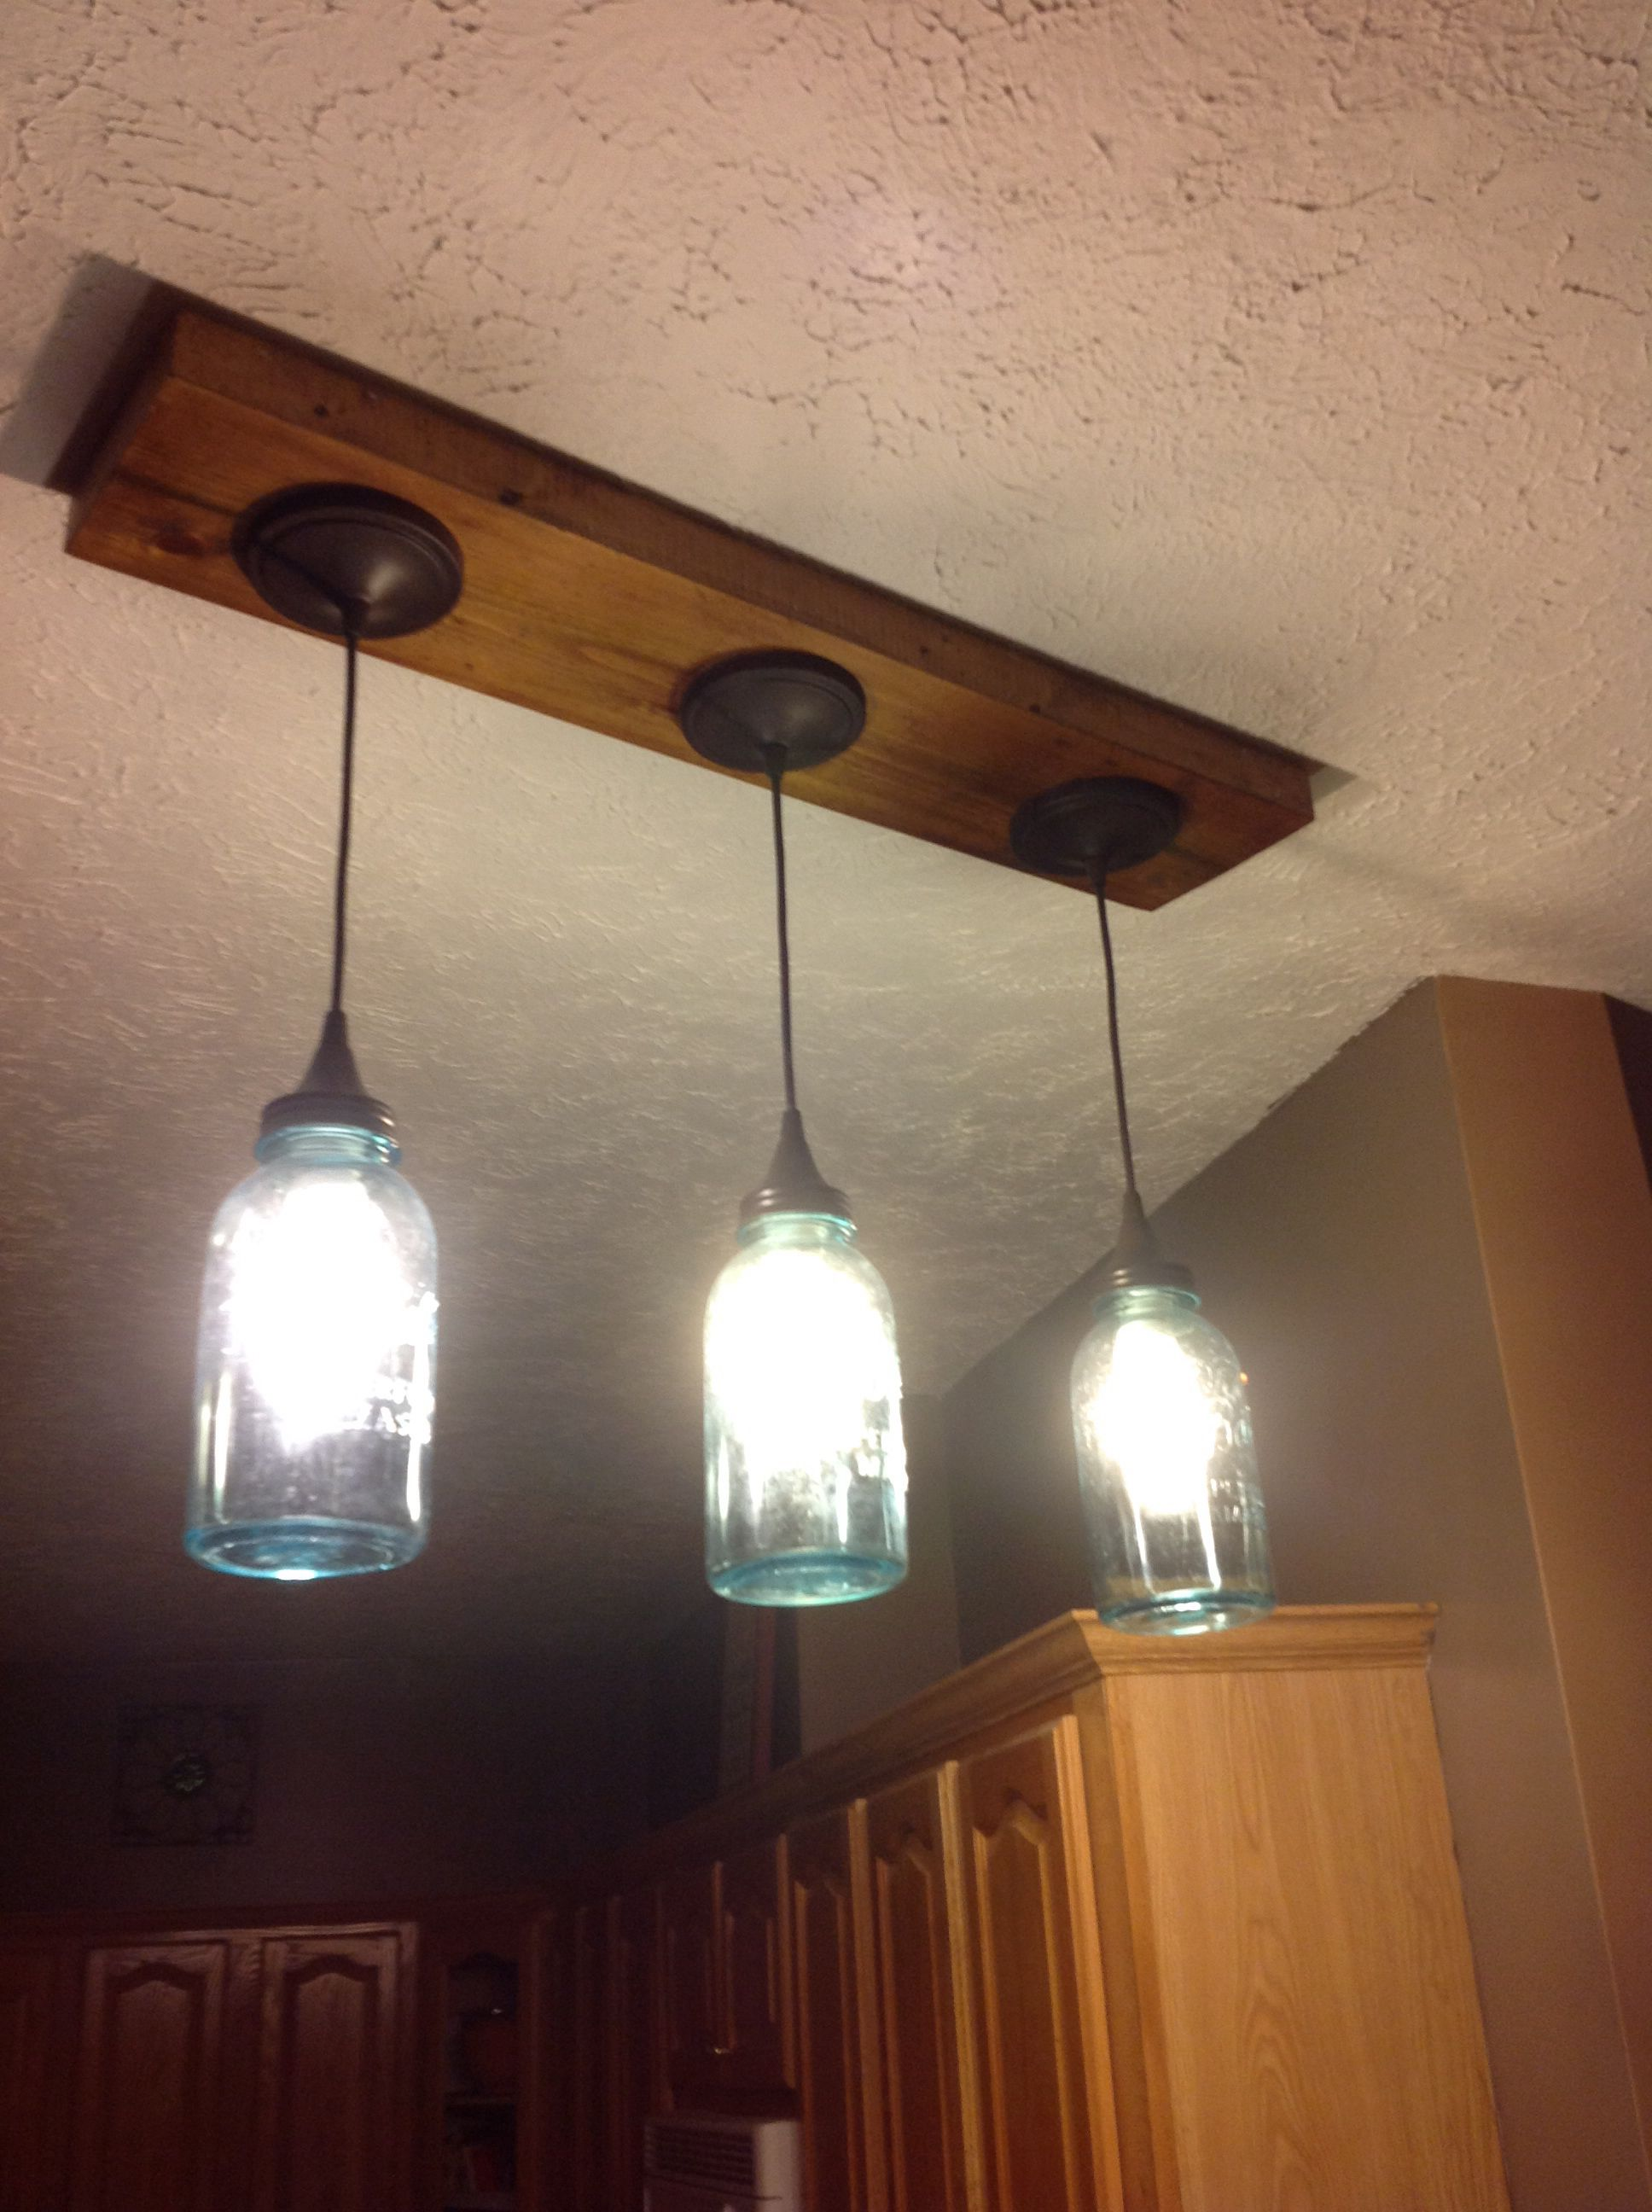 We Replaced Our Track Lighting With Blue Ball Jar Pendant Lights I Had The Idea And Hubby Made It For Me Love Having A Crafty Husband